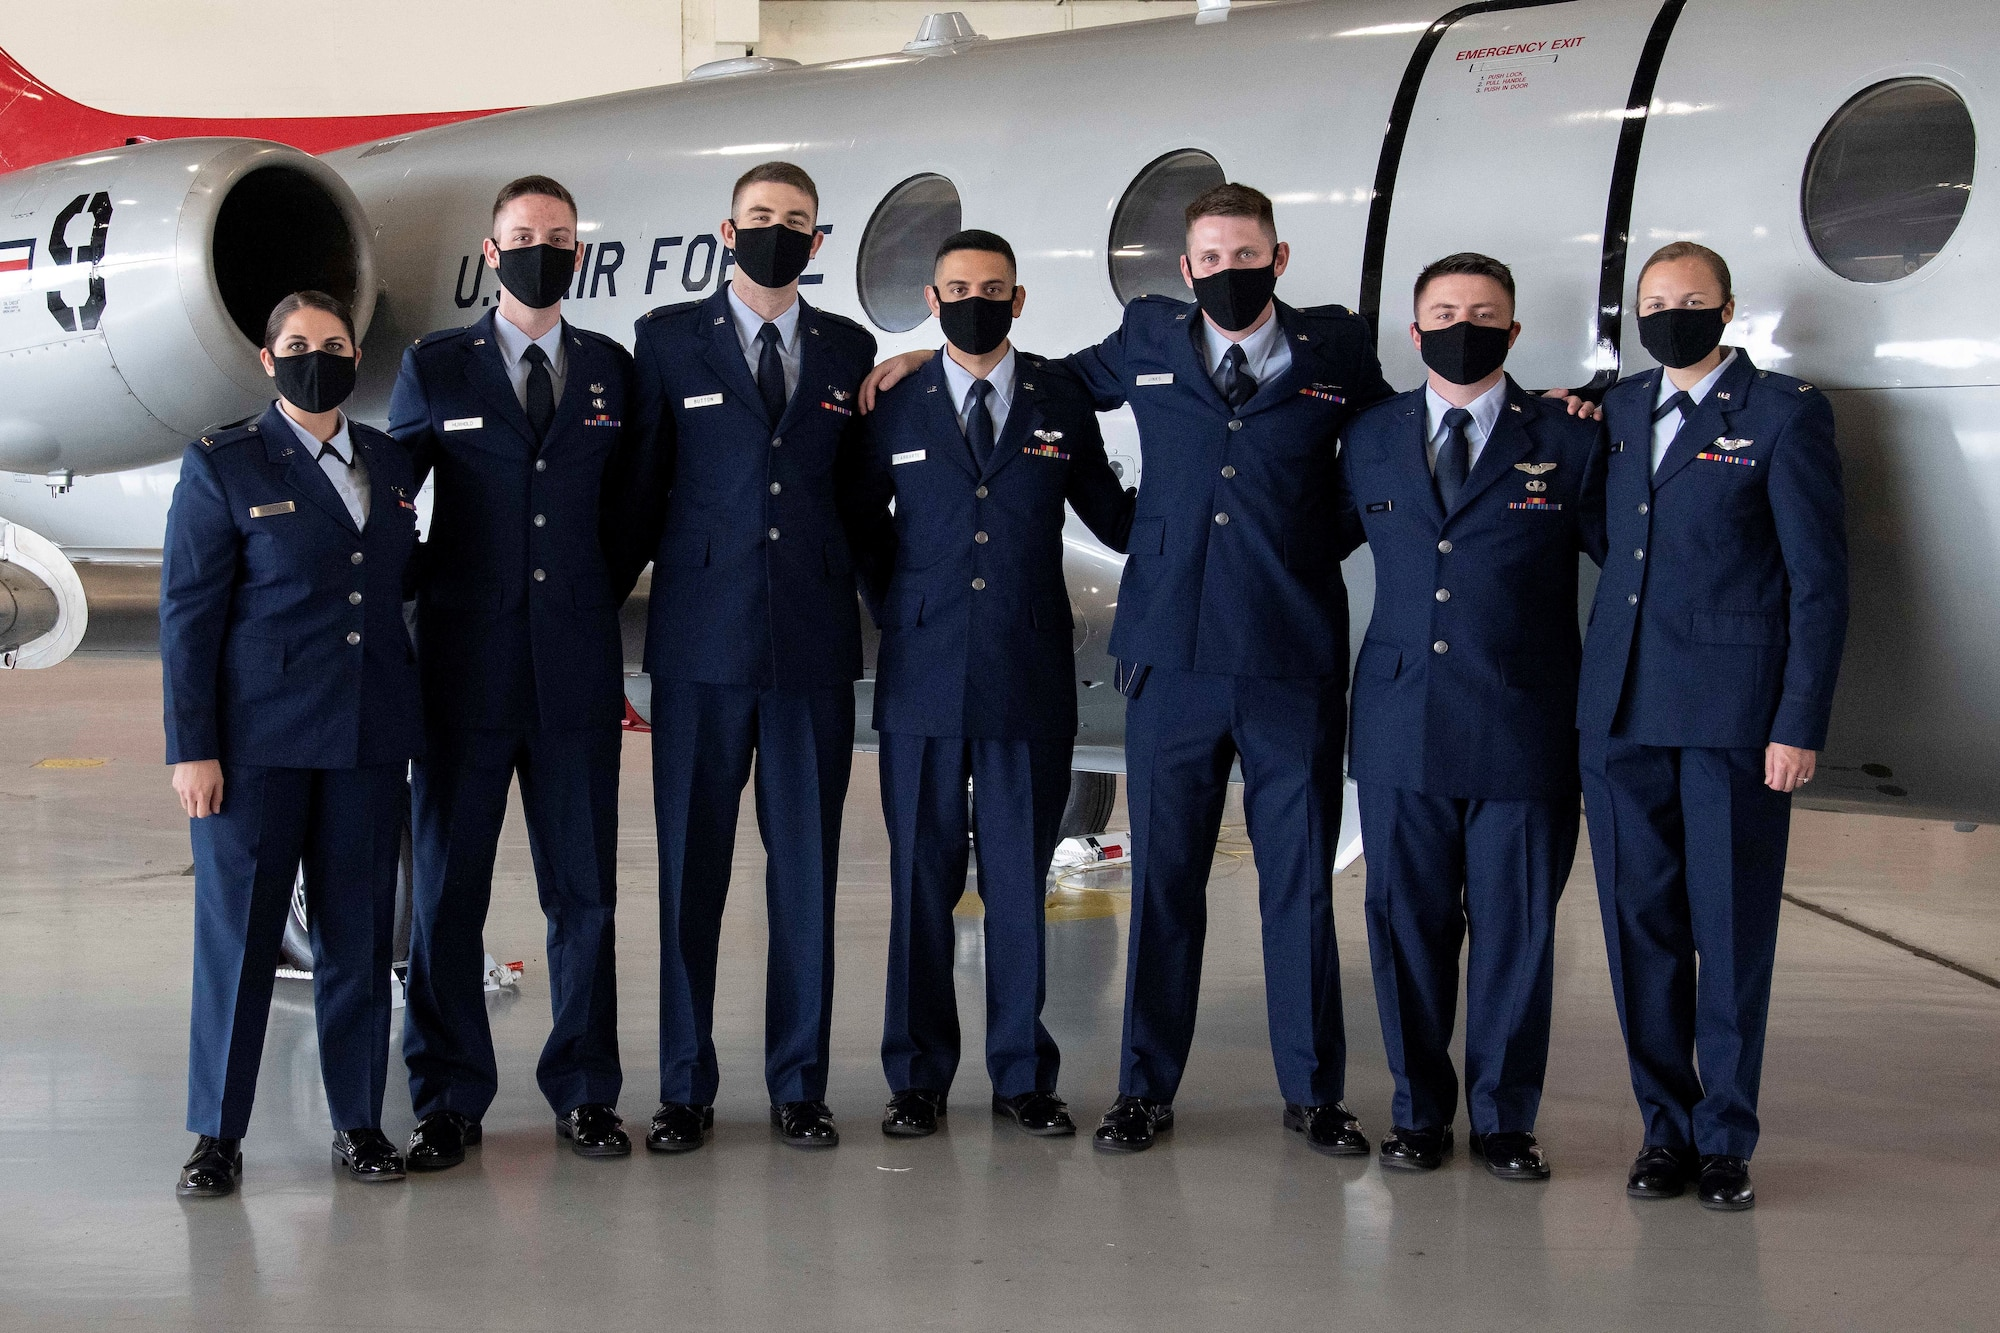 """Graduates from the first-ever """"Accelerated Path to Wings"""" class gather in front of a T-1 Jayhawk aircraft after receiving their pilot wings March 12, 2021 at Joint Base San Antonio-Randolph, Texas. Accelerated Path to Wings is part of Air Education and Training Command's pilot training transformation program, a two phase T-1 only pilot training tract. The 99th Flying Training Squadron is responsible for executing the seven month training mission that culminates with students earning their pilot wings."""